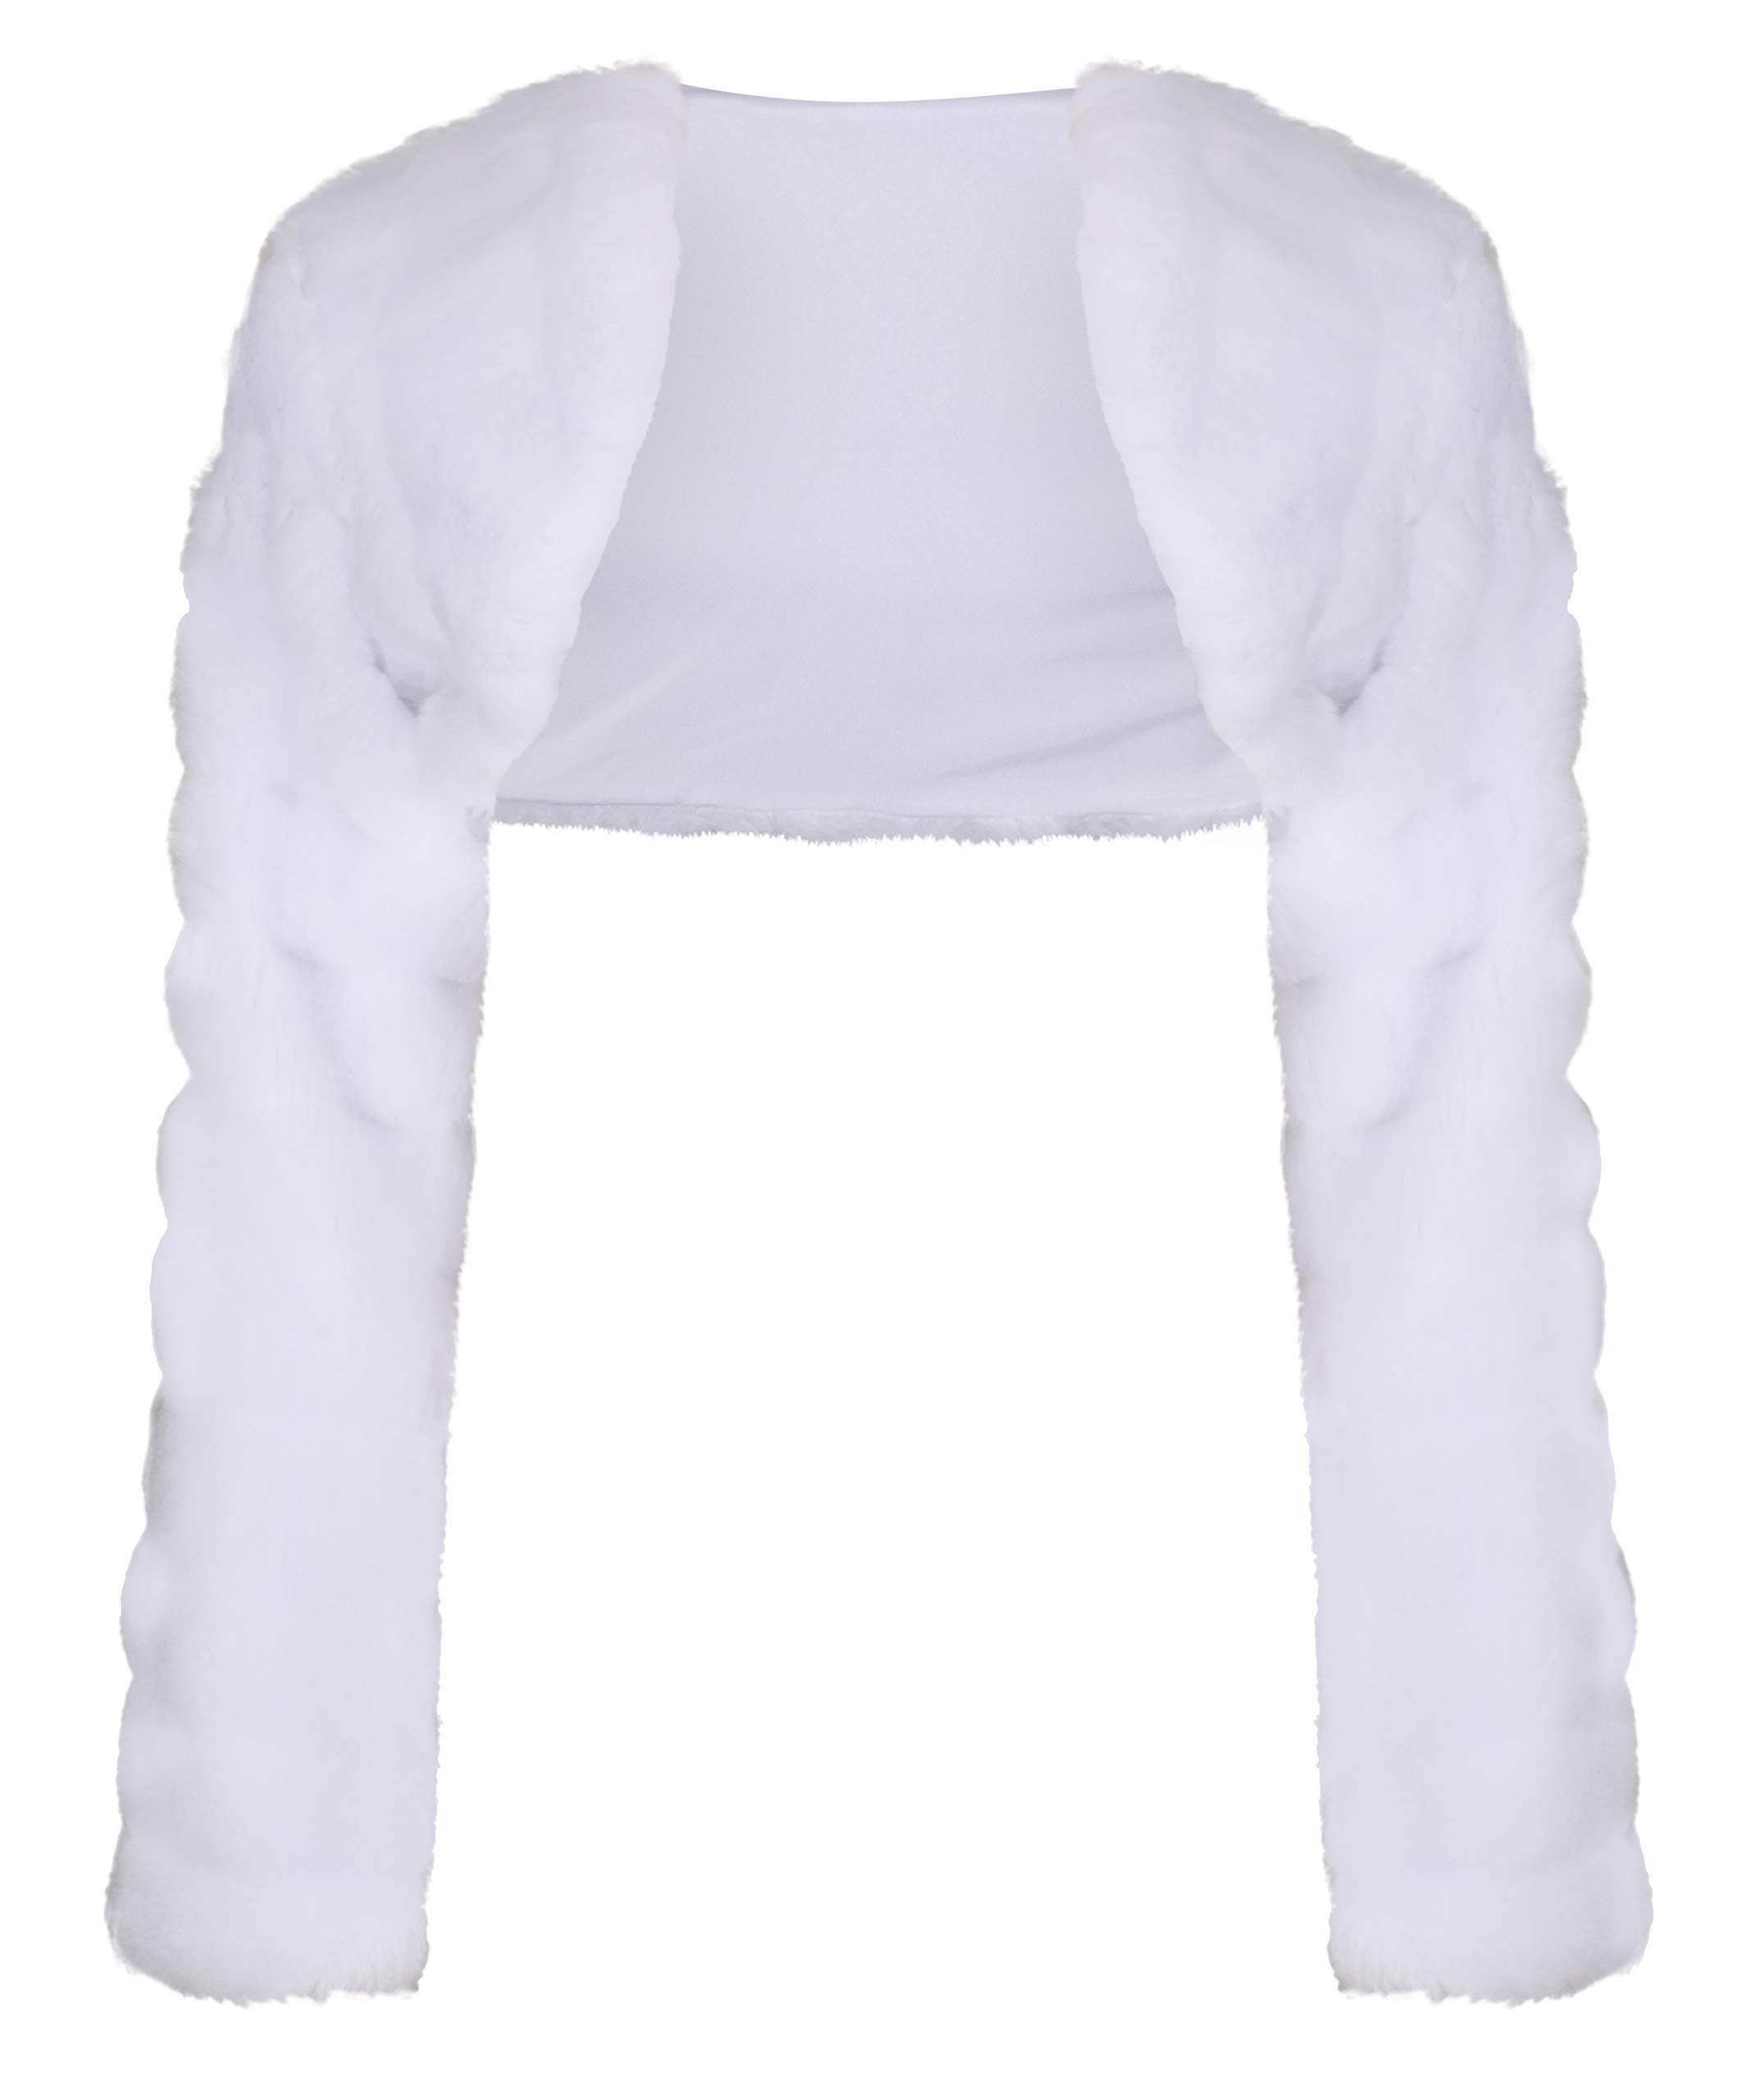 OssaFashion-BridalWear Flower Girls Wedding Communion Faux Fur Bolero Jacket Shrug Long Sleeve 2-13yrs